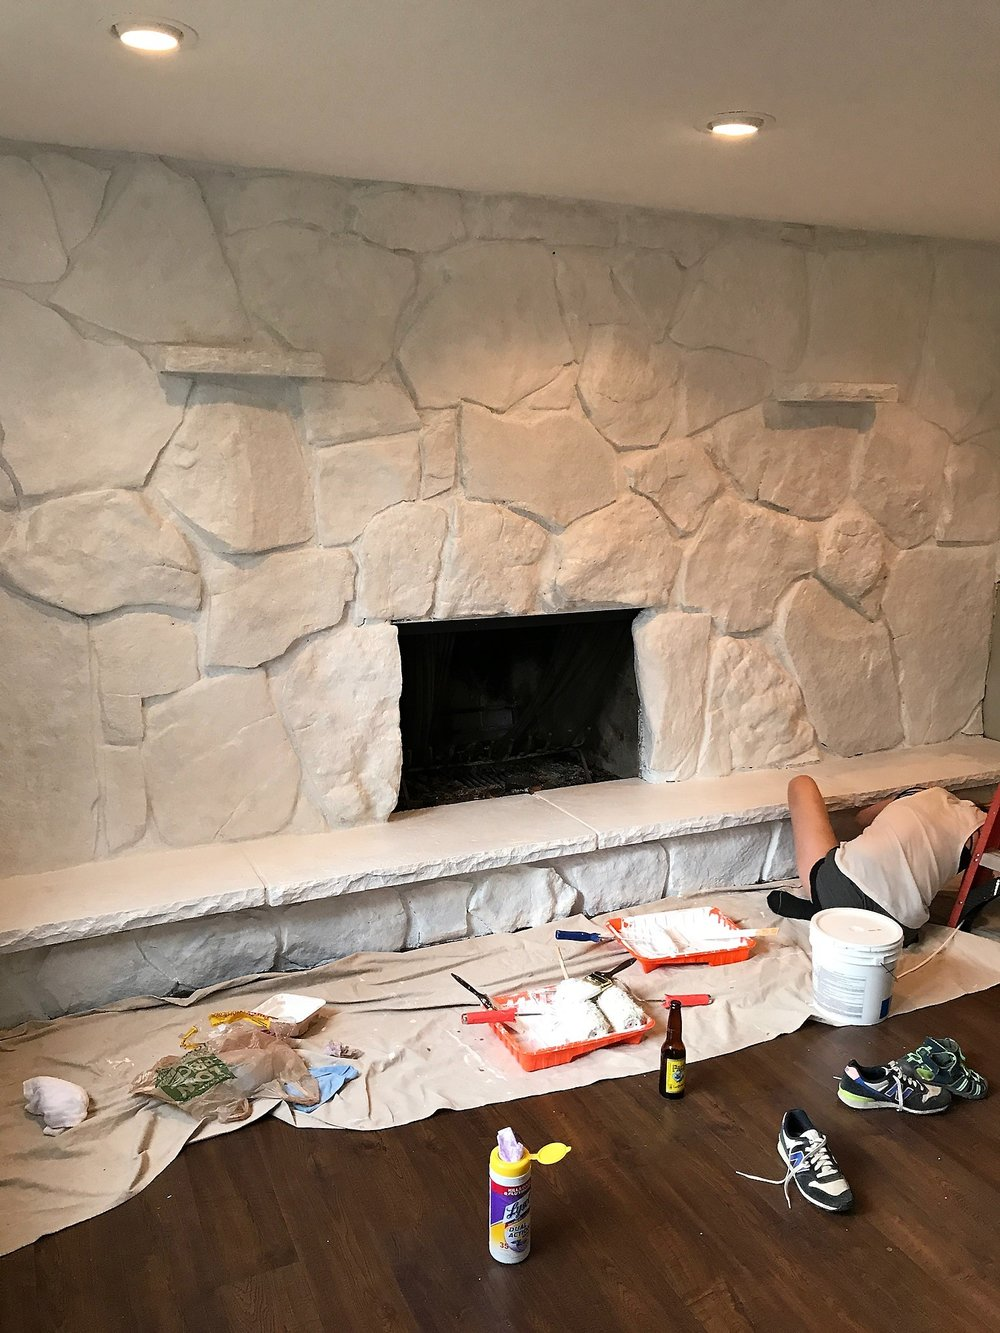 Painting the base of the fireplace